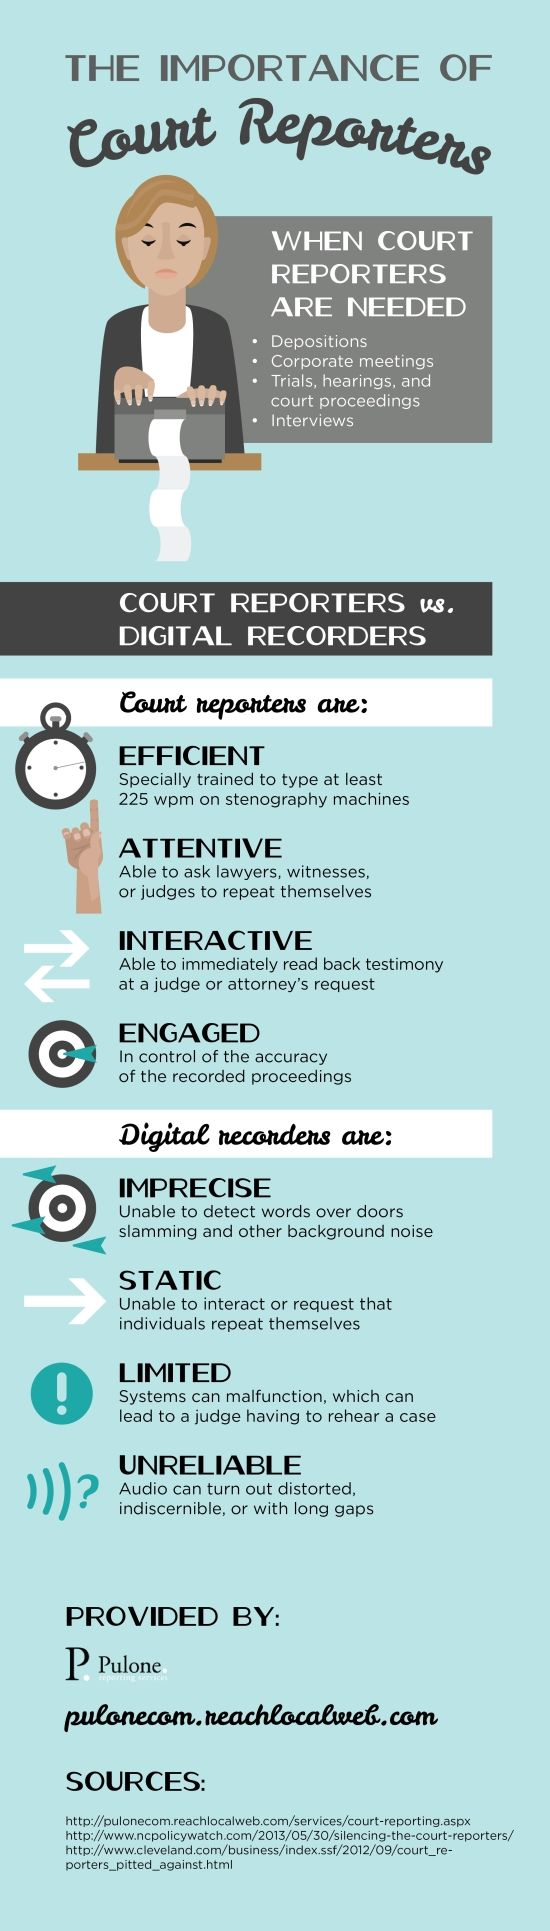 Did you know that court reporters are specifically trained to type at least 225 wpm on stenography machines? That's impressive! Consult this infographic about court interpreters in San Jose to see other impressive facts about this profession.